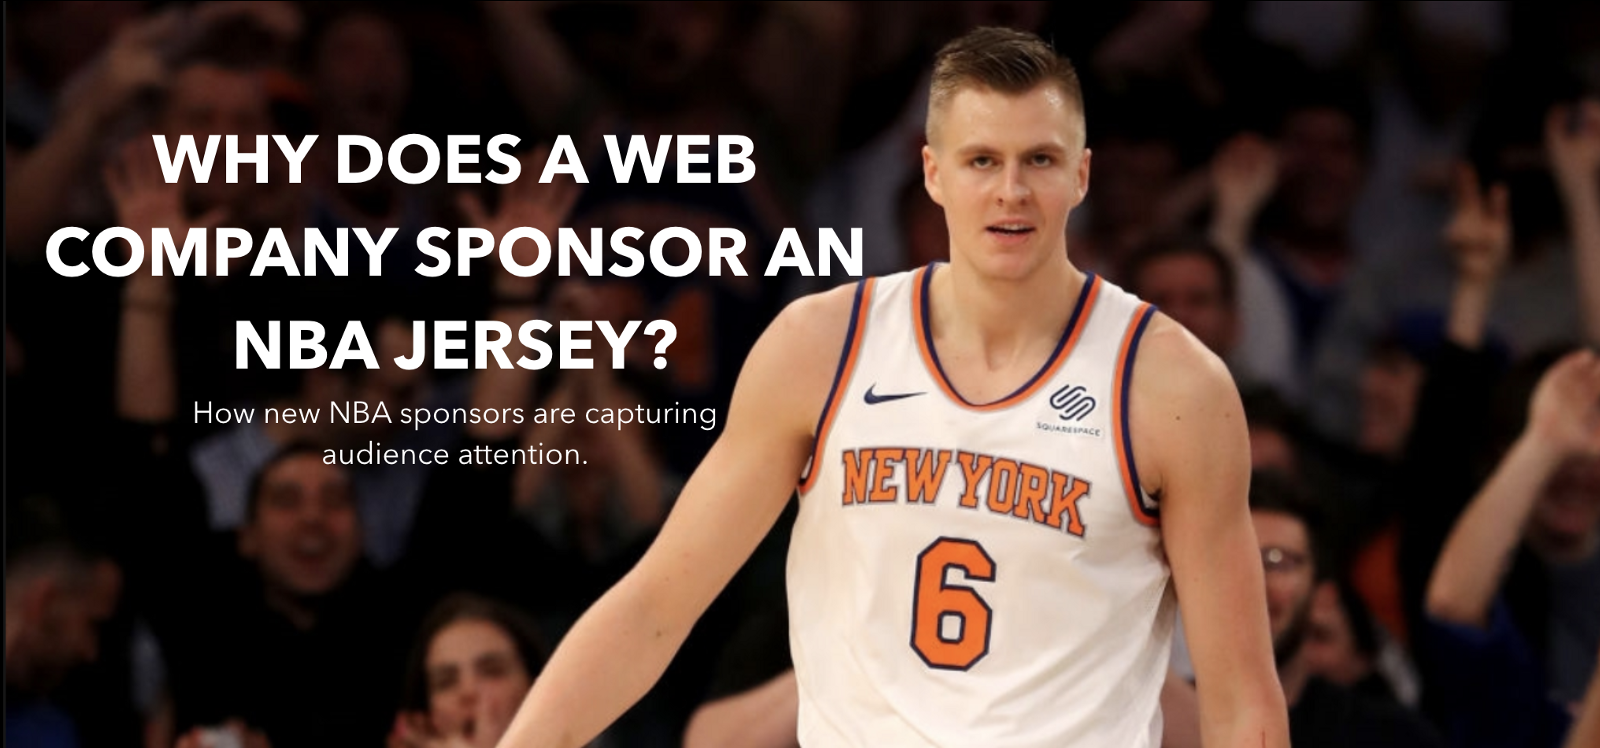 ddda94315 Why does a web company sponsor an NBA jersey  – Paul Hickey – Medium